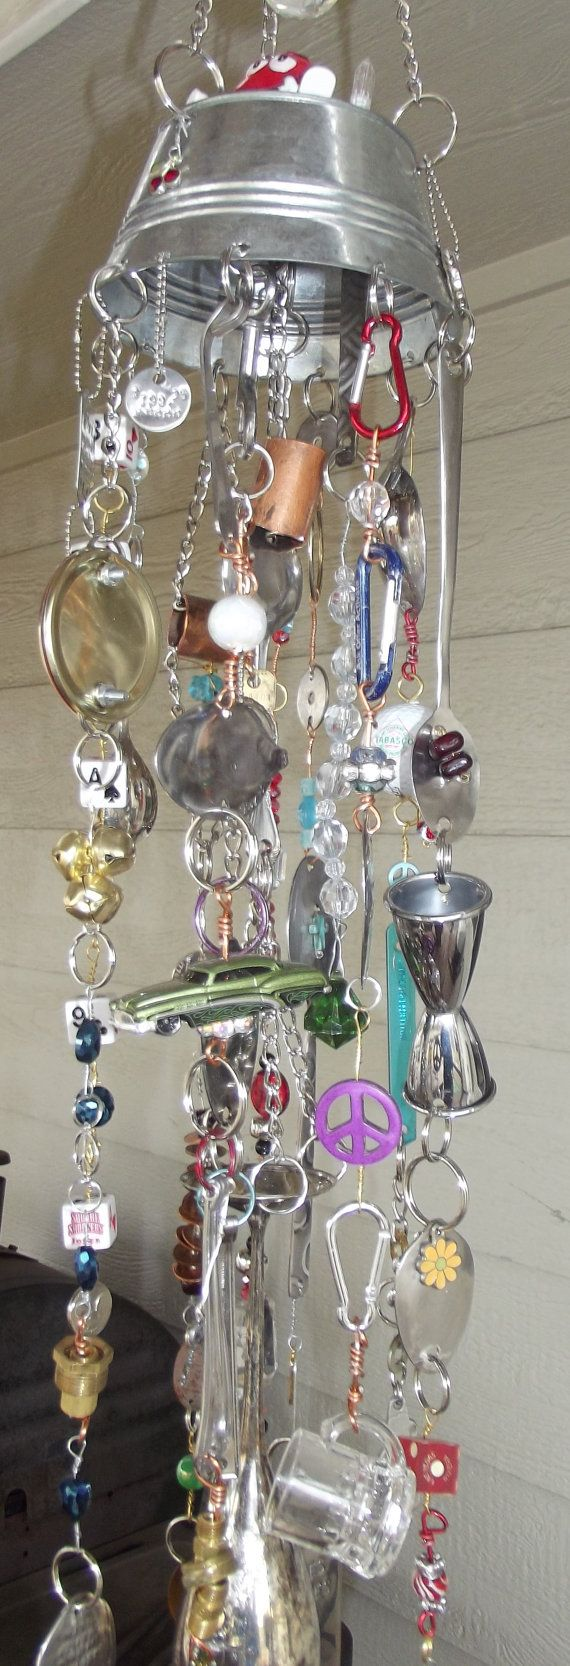 Wind Chime with little bucket top by Junk Drawer on Etsy,